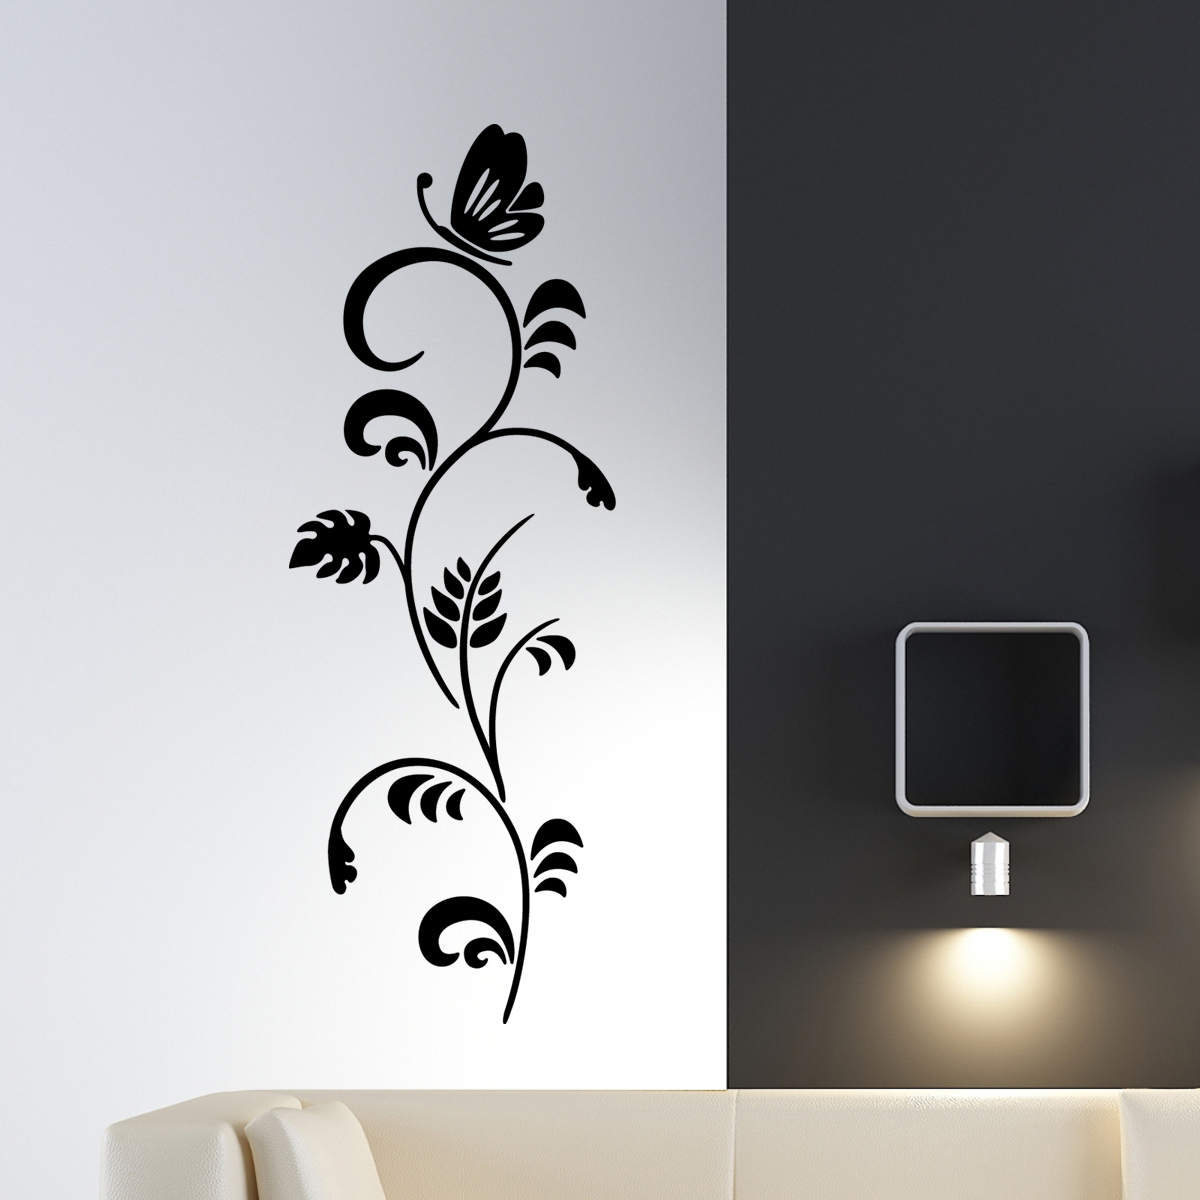 sticker mural branche papillon stickers fleurs ambiance. Black Bedroom Furniture Sets. Home Design Ideas